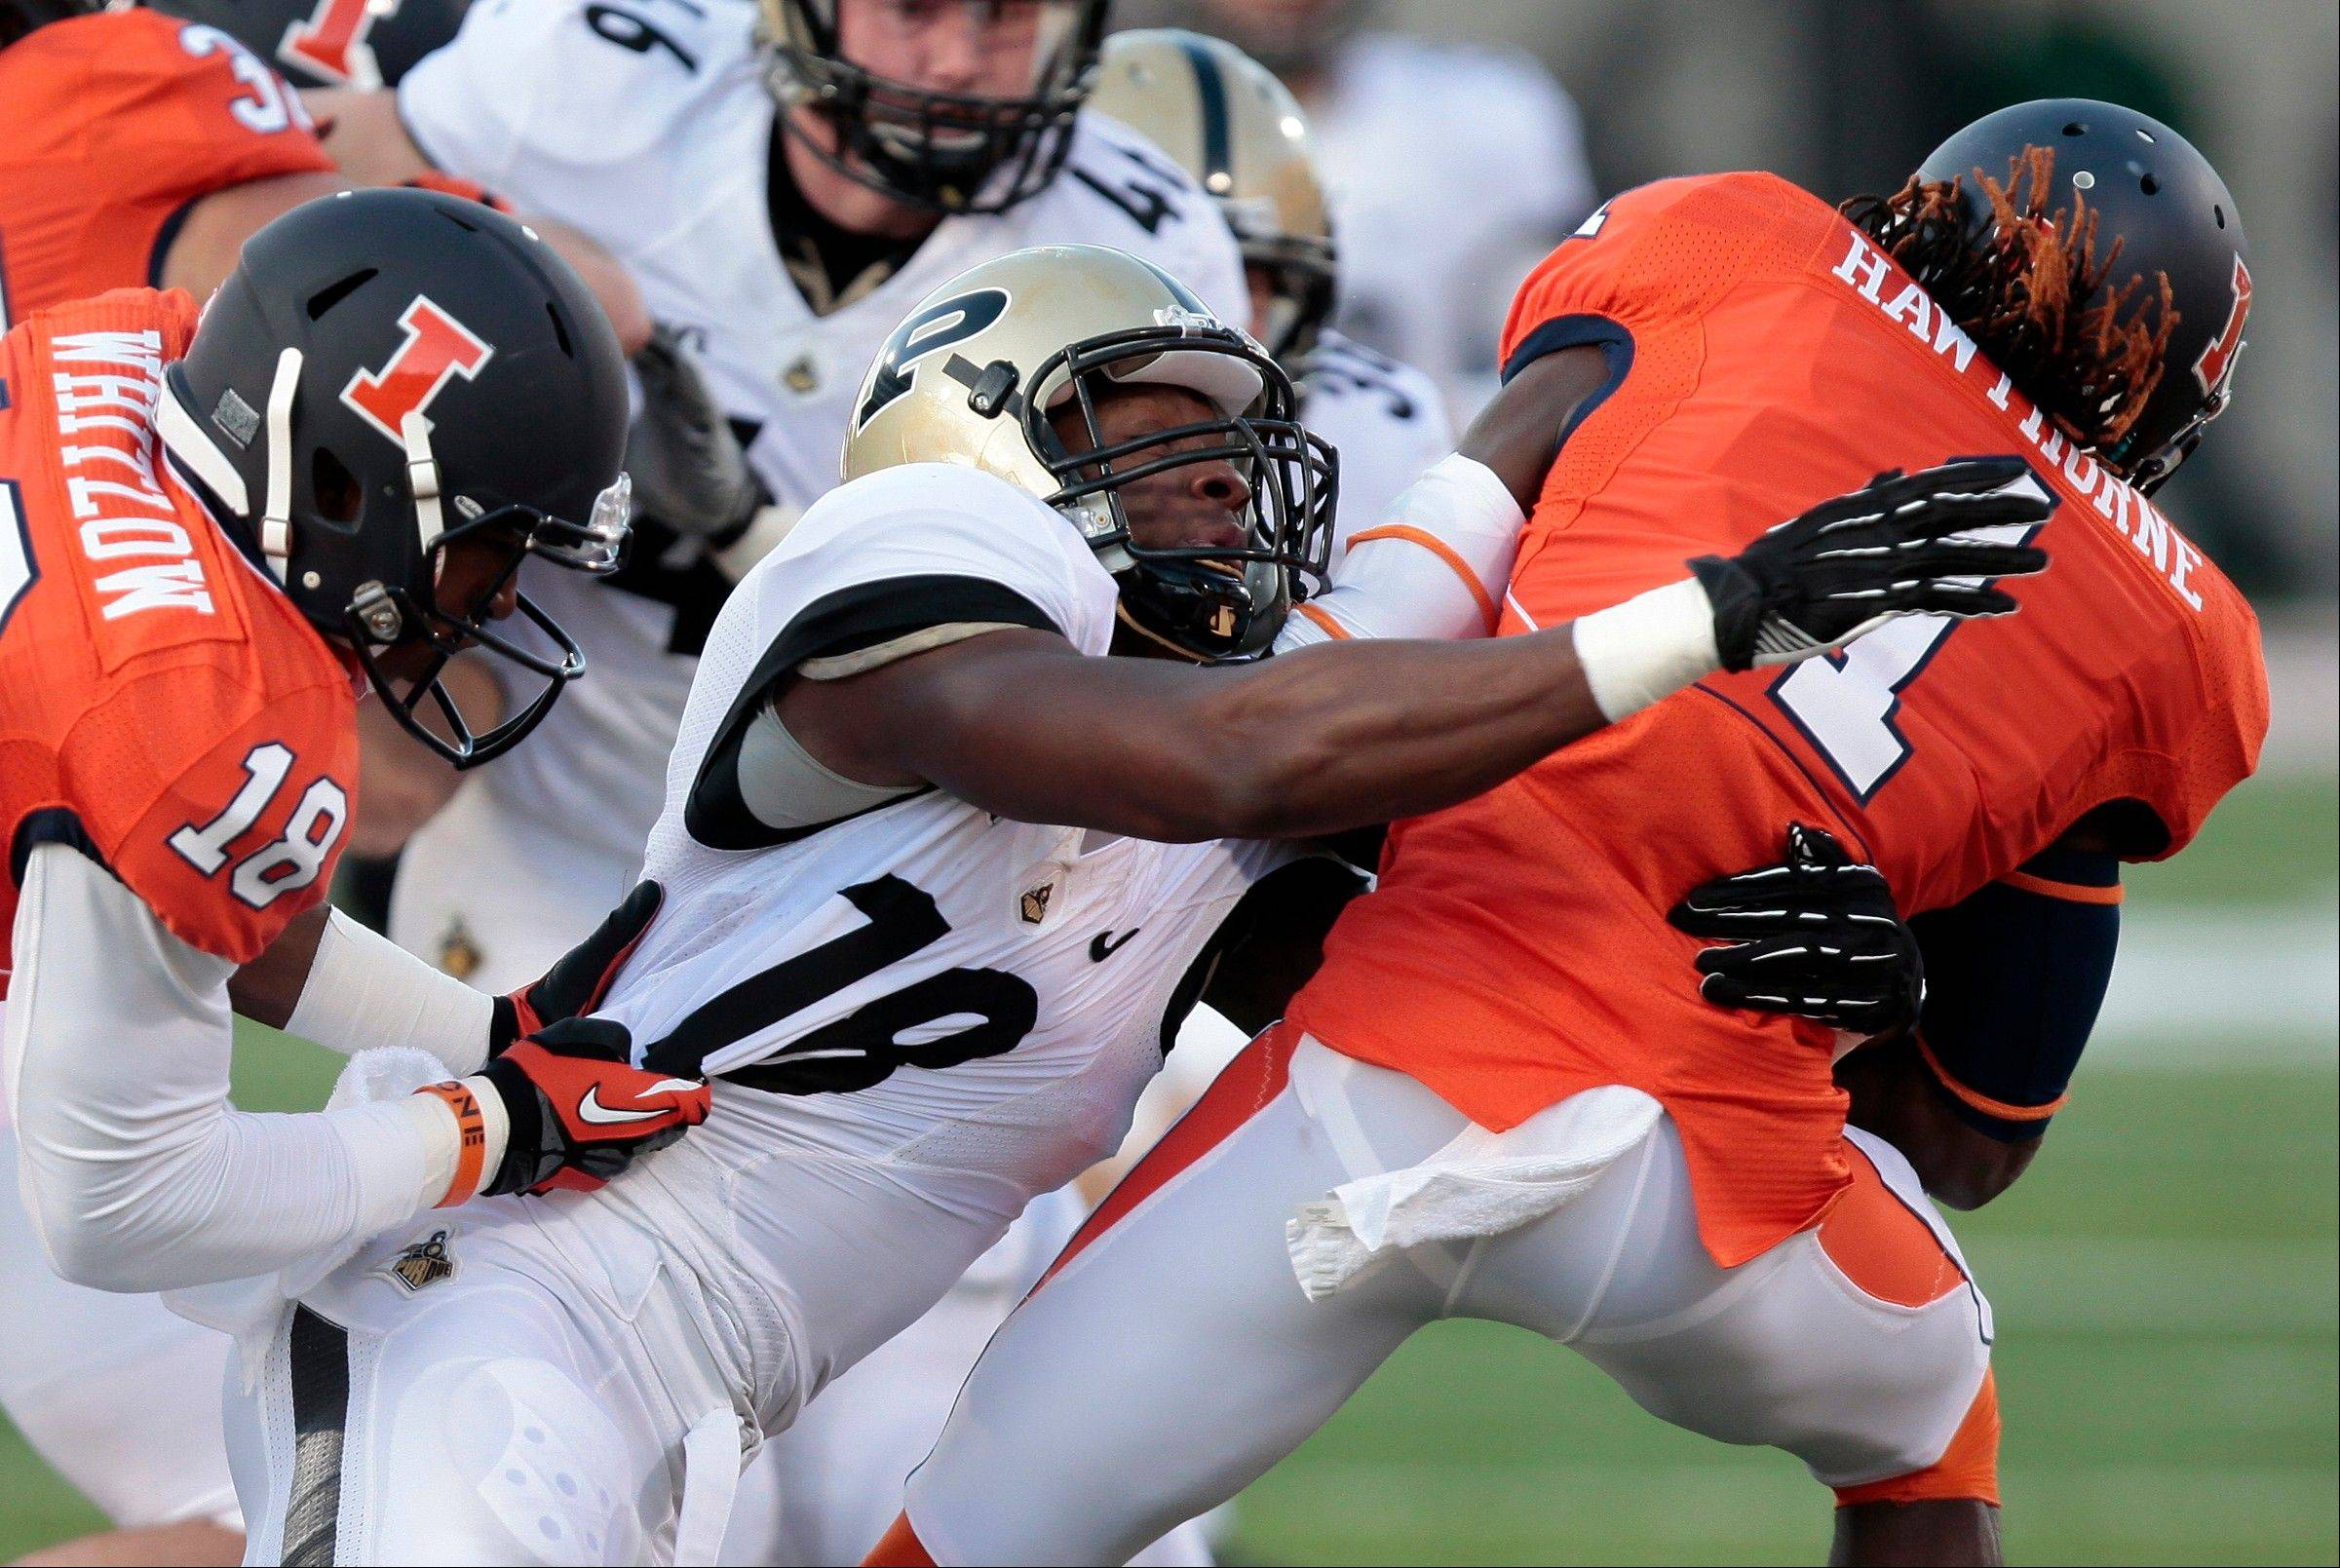 Purdue's Nnamdi Ezenwa (18) tackles Illinois' Terry Hawthorne (1) during the first half of an NCAA college football game on Saturday, Nov. 17, 2012, in Champaign, Ill.